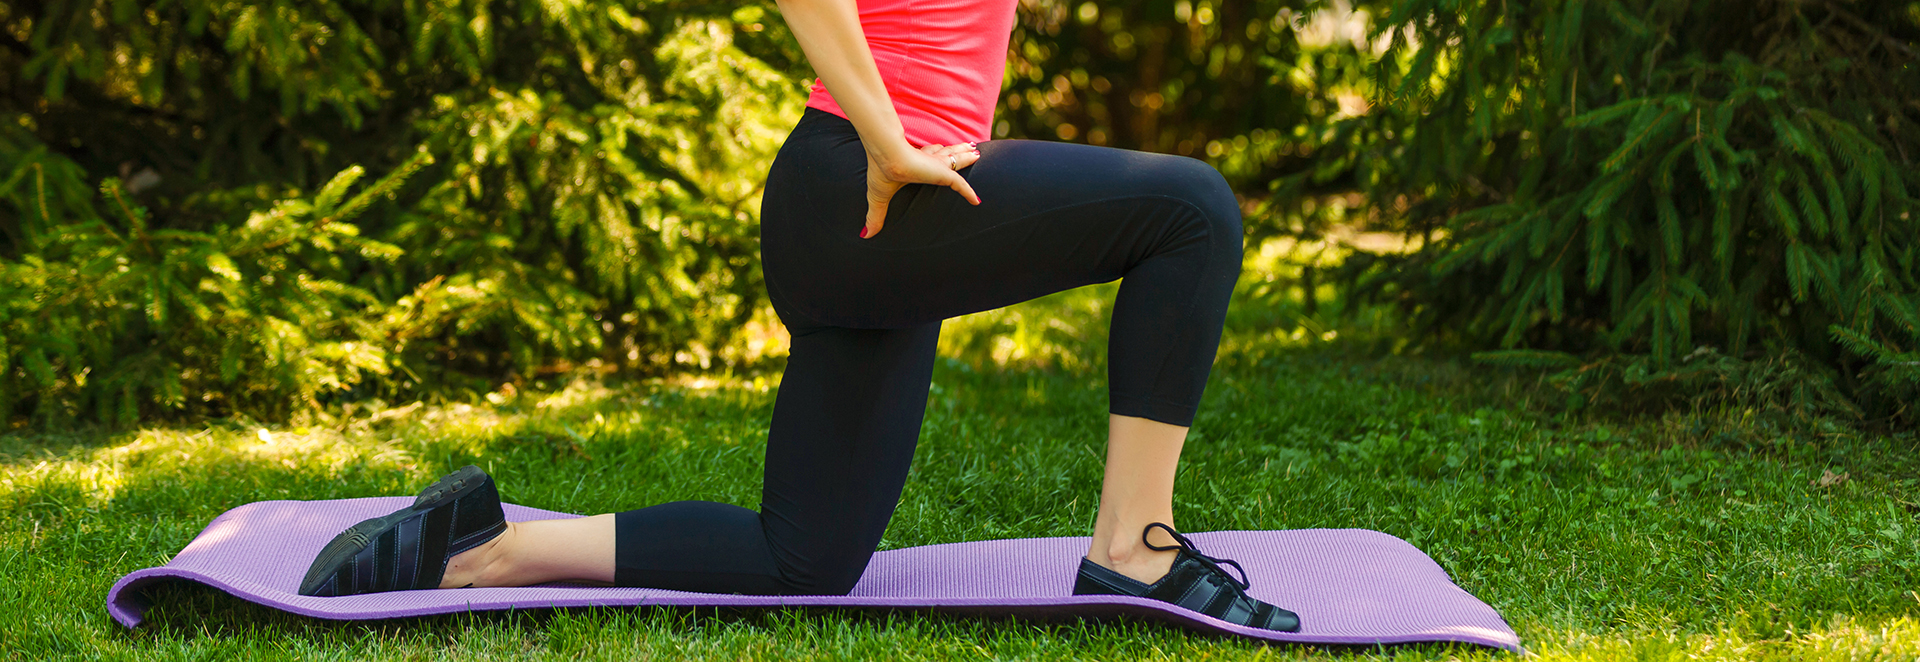 Tips for Perfecting the Hip Flexor Stretch to Relieve Nagging Hip Pain